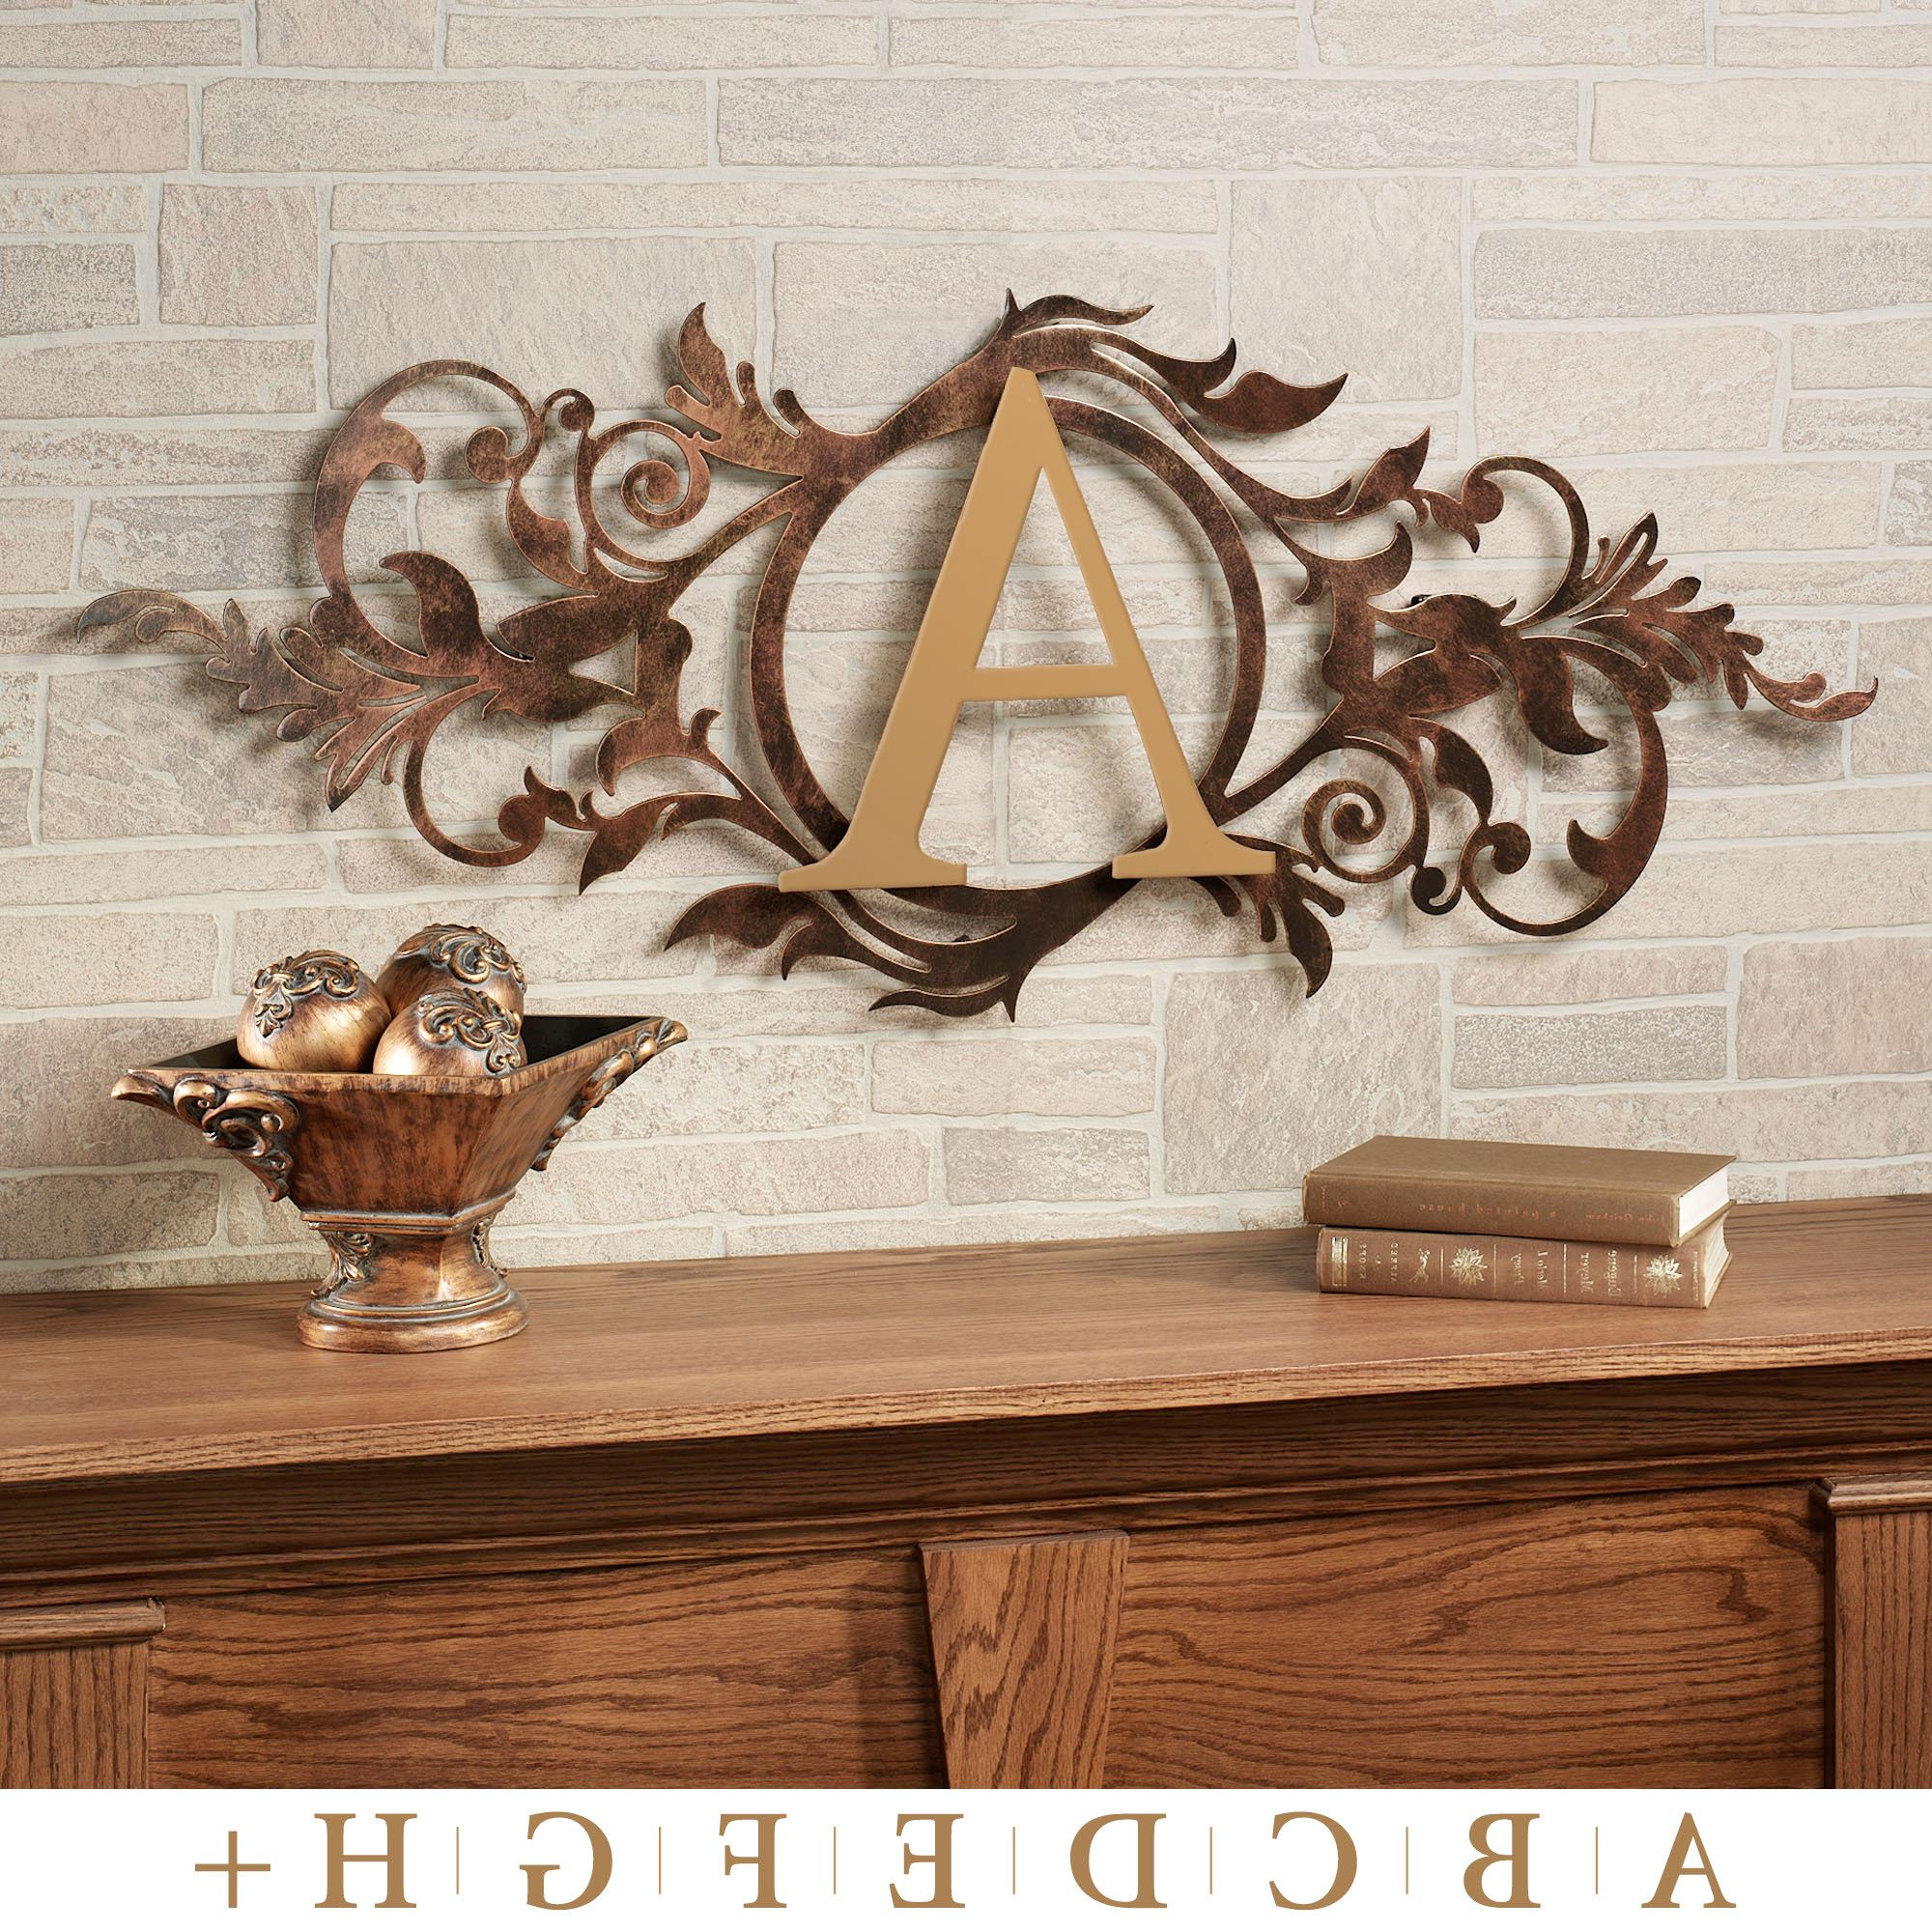 Meglynn Monogram Horizontal Metal Wall Art Sign Intended For Best And Newest Ornamental Wood And Metal Scroll Wall Decor (View 6 of 20)